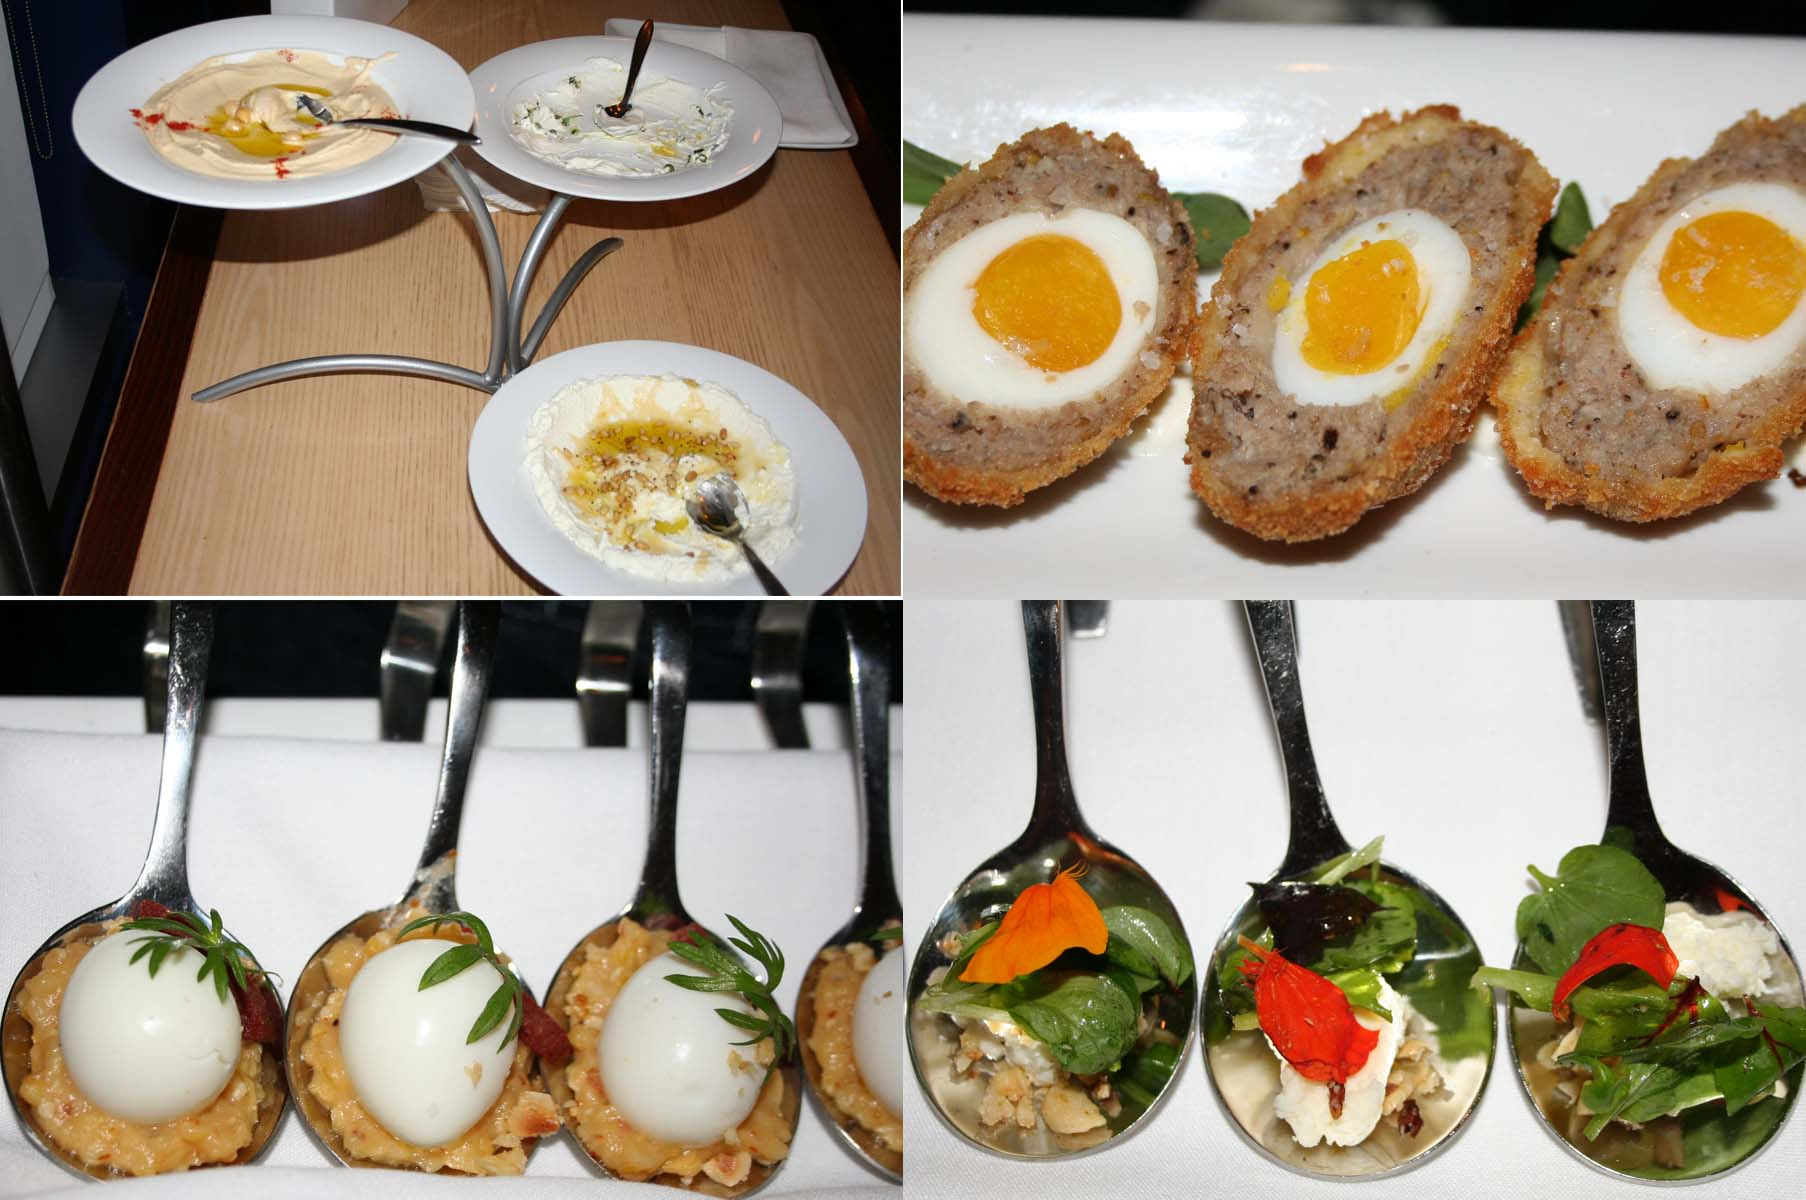 Zaytinya's special Greek Easter menu (clockwise from top left) includes lavash chips with hummus, labneh and tzatzik, a Greek egg, marthoulosalata and kacamak. (Photos: Mark Heckathorn/DC on Heels)